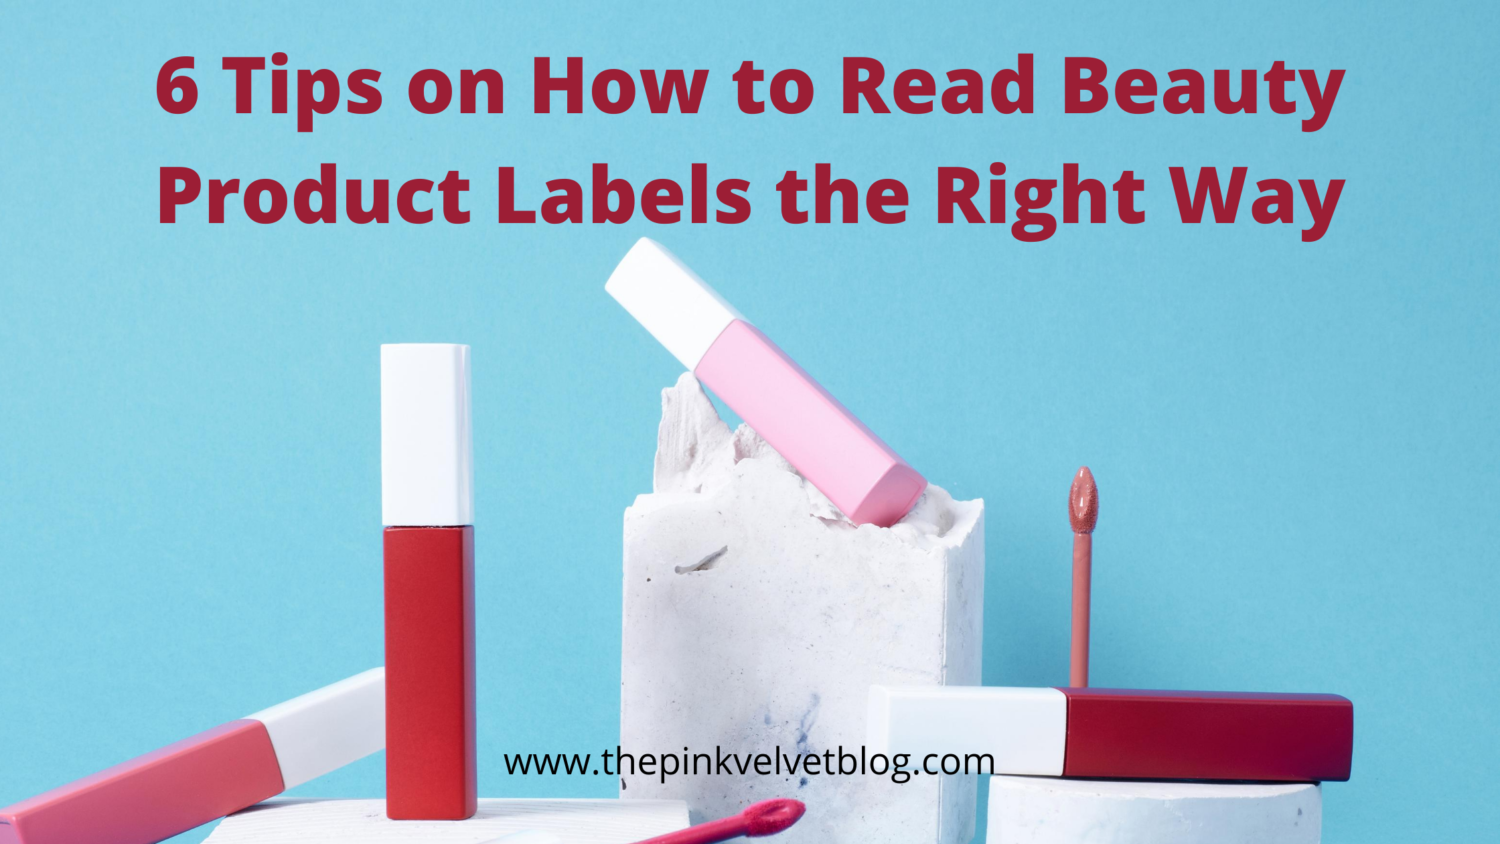 6 Tips for Better Understanding on How to Read Beauty Product Labels